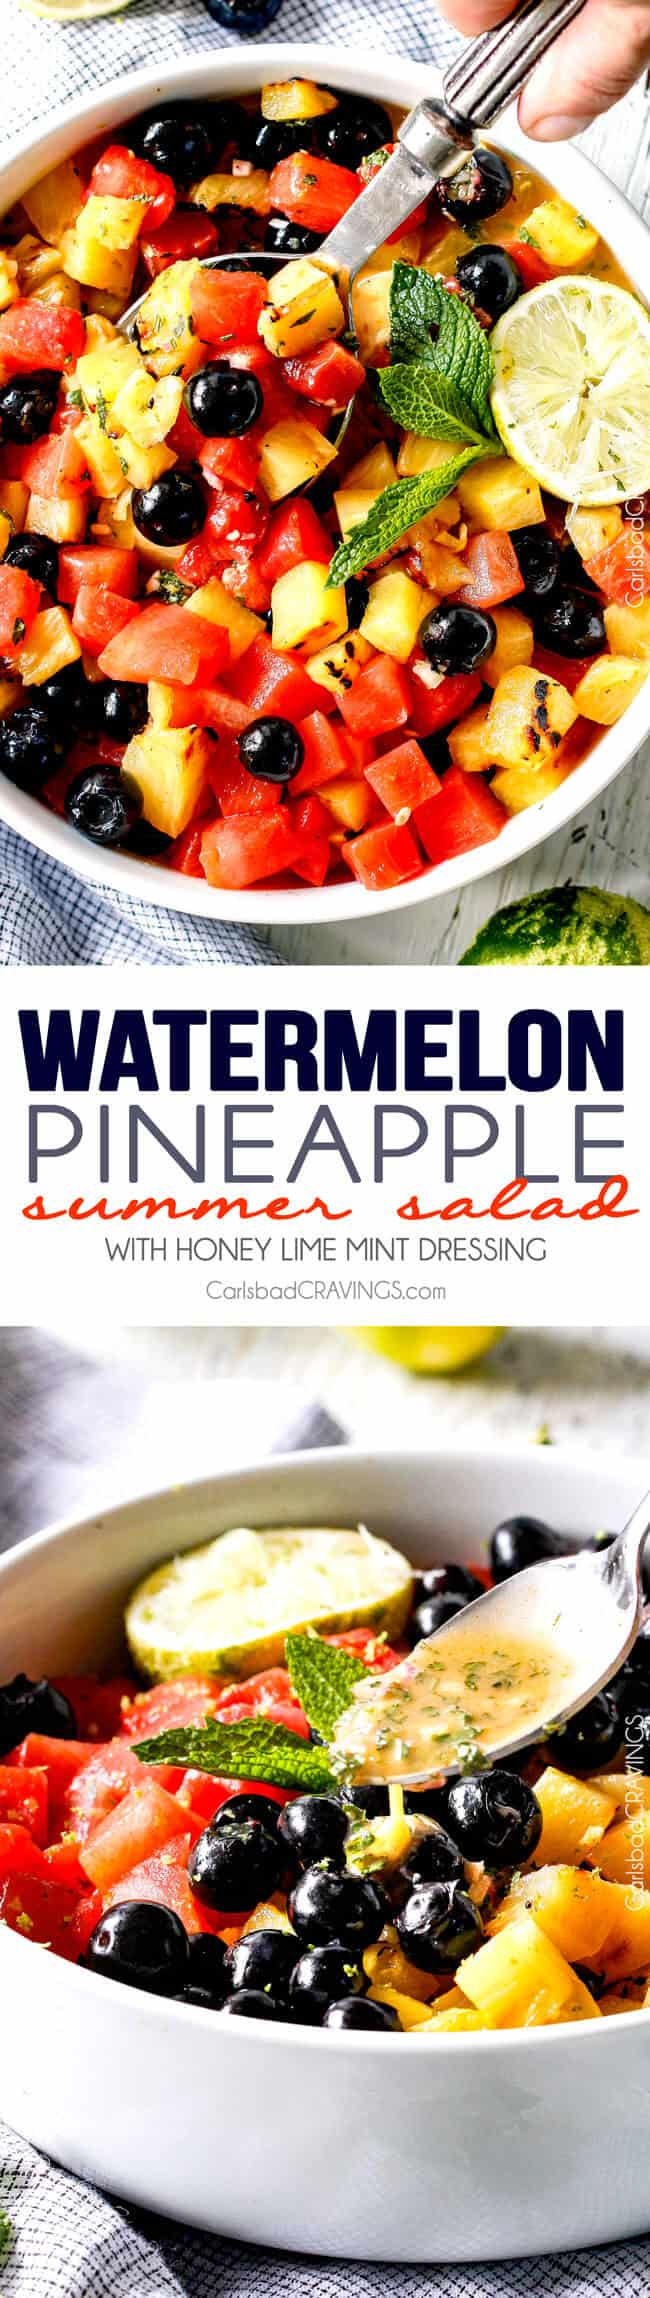 (Grilled optional) Watermelon Pineapple Summer Salad with Honey Lime Mint Dressing - This is possibly the best fruit salad I have ever had the pleasure of making and its so easy! I'm asked all the time to bring it get-togethers and what I especially love is you can use any fruit you want. One of my go to summer recipes! #4thofjuly